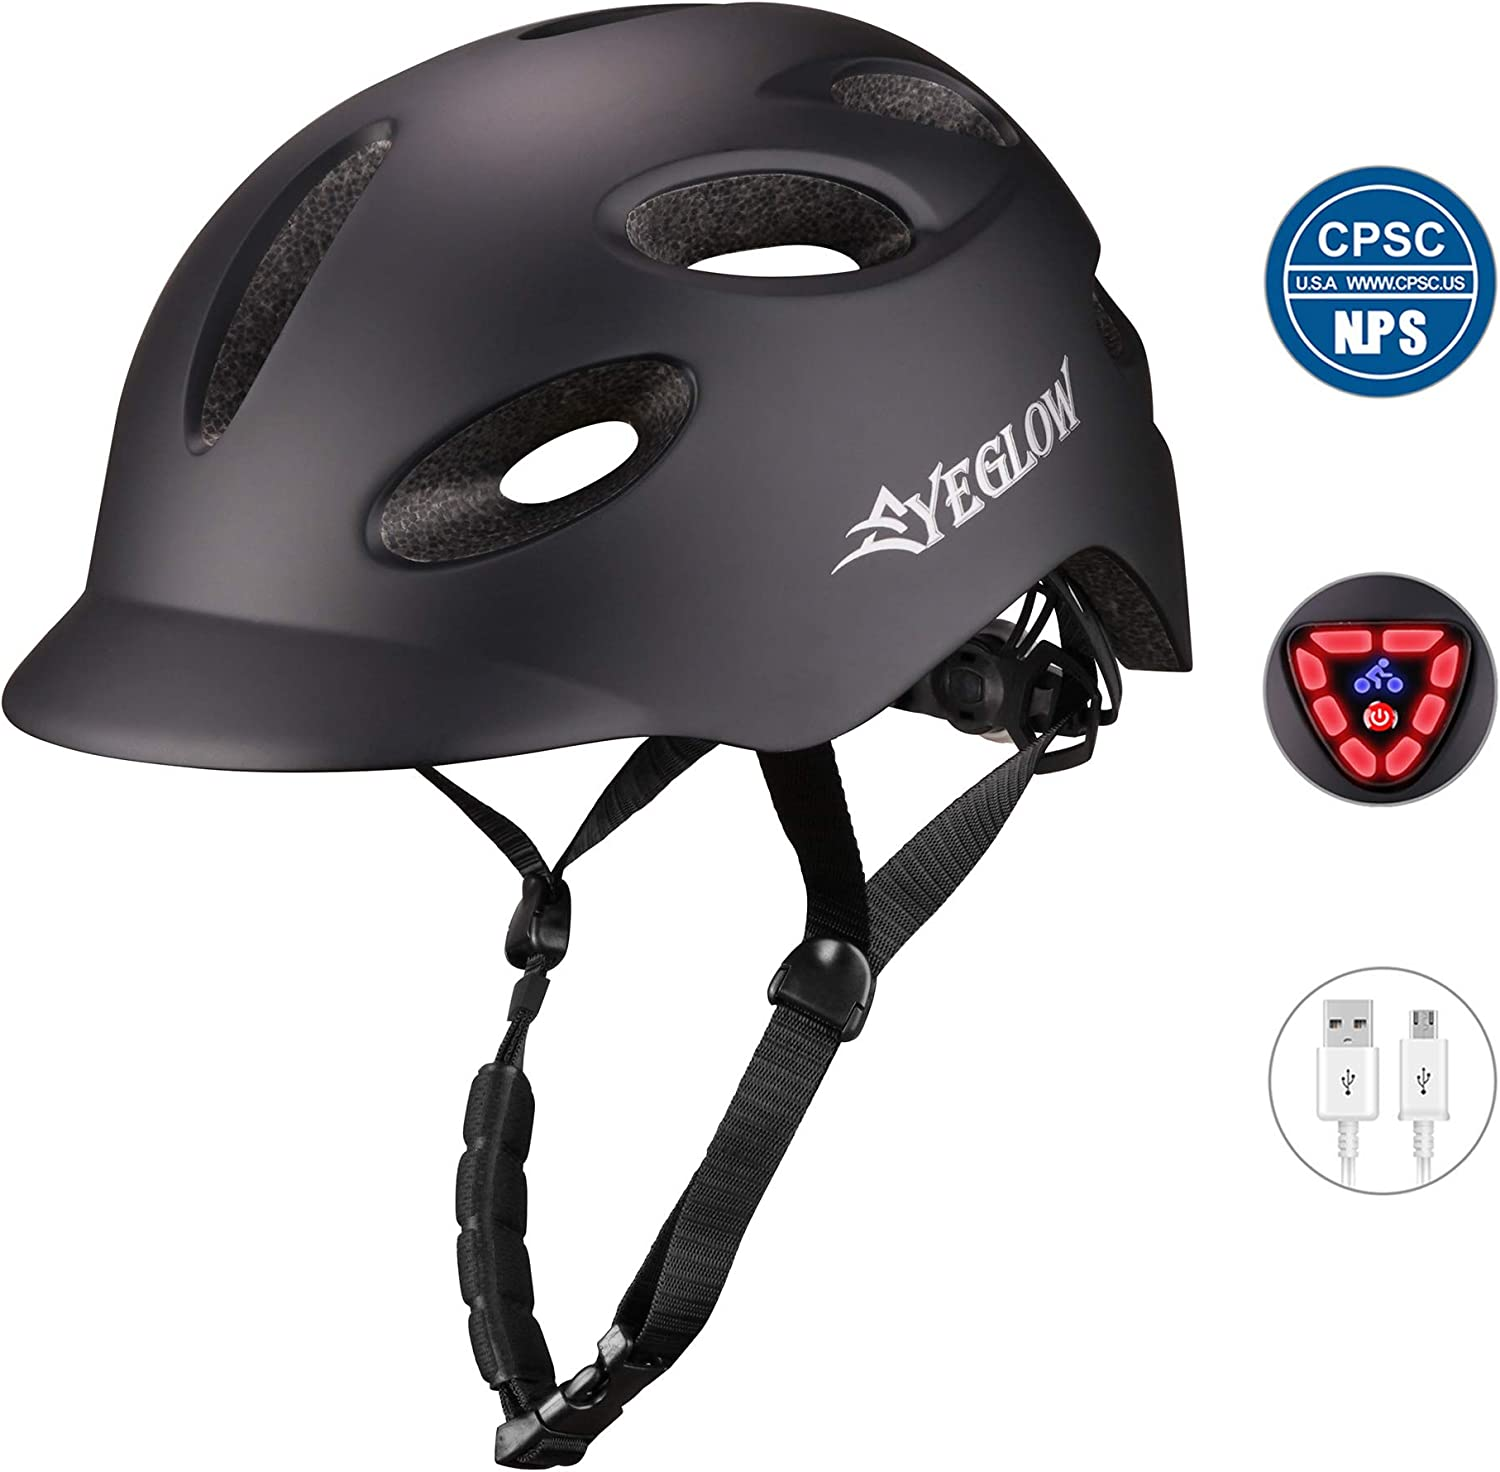 EyeGlow Adult Bike Helmet with Rechargeable USB Safety Light for Urban Commuter CPSC Certified